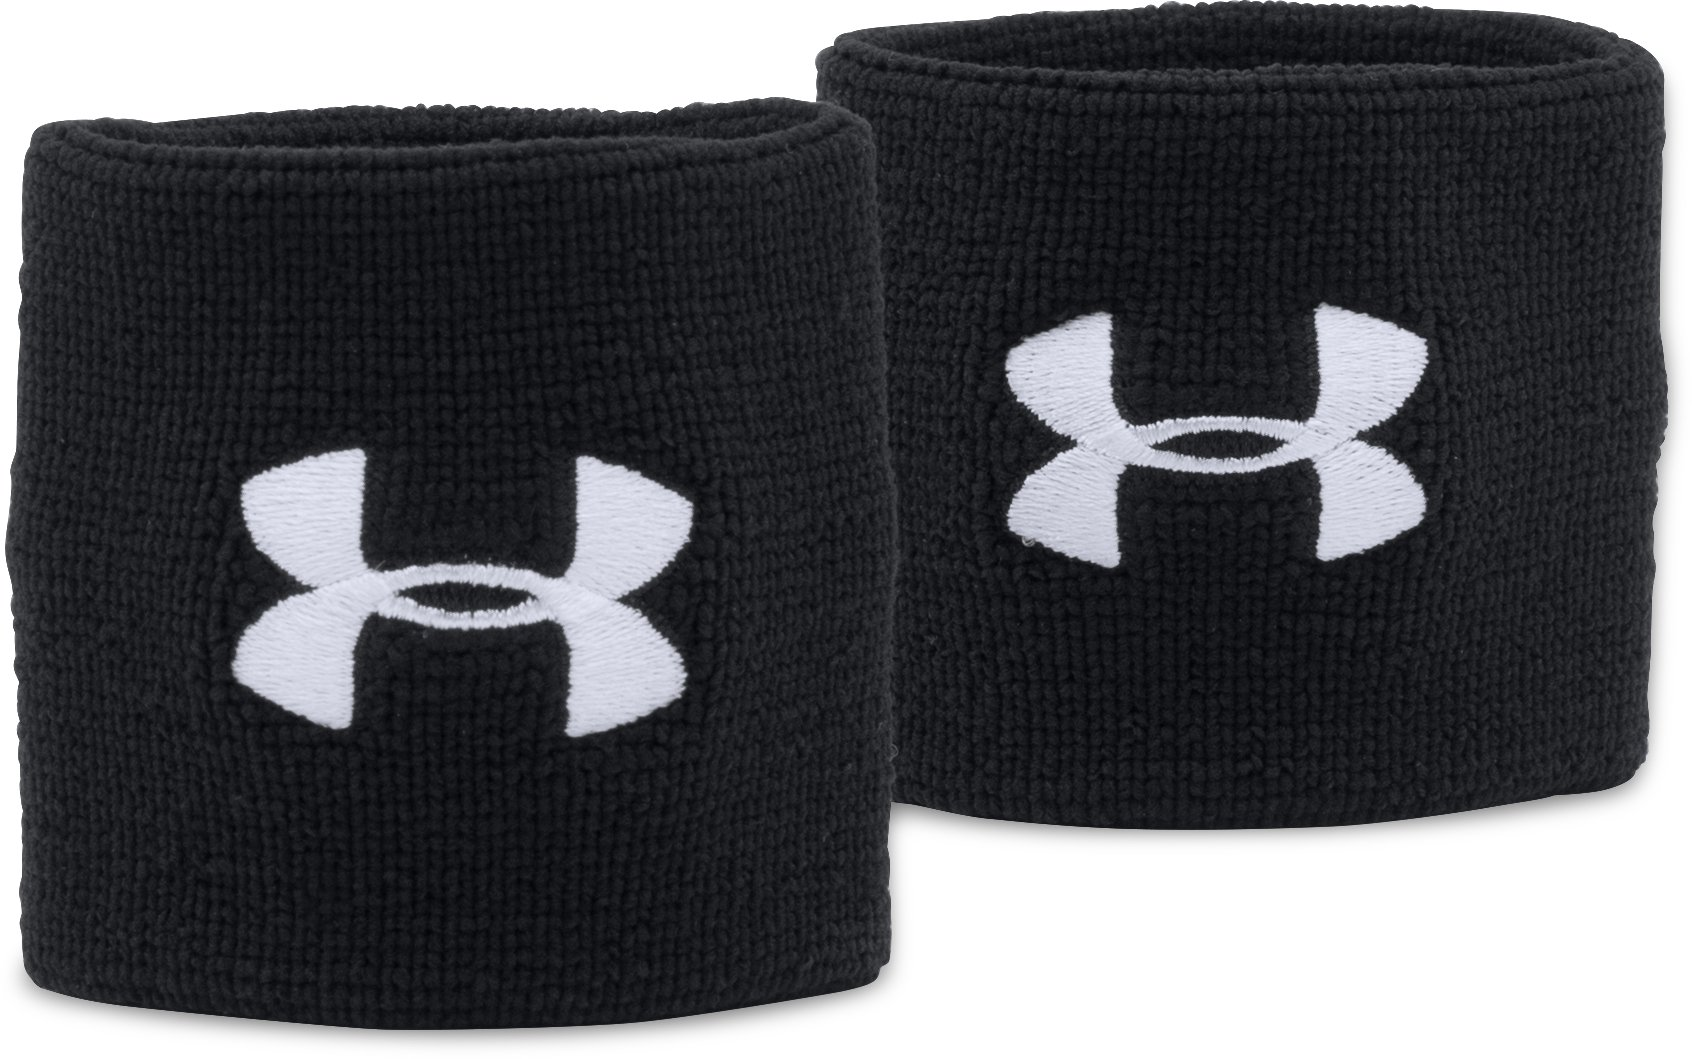 "girls wristbands Men's UA 3"" Performance Wristband – 2-Pack These are perfect!...Great quality...Love it, those are second pairs."